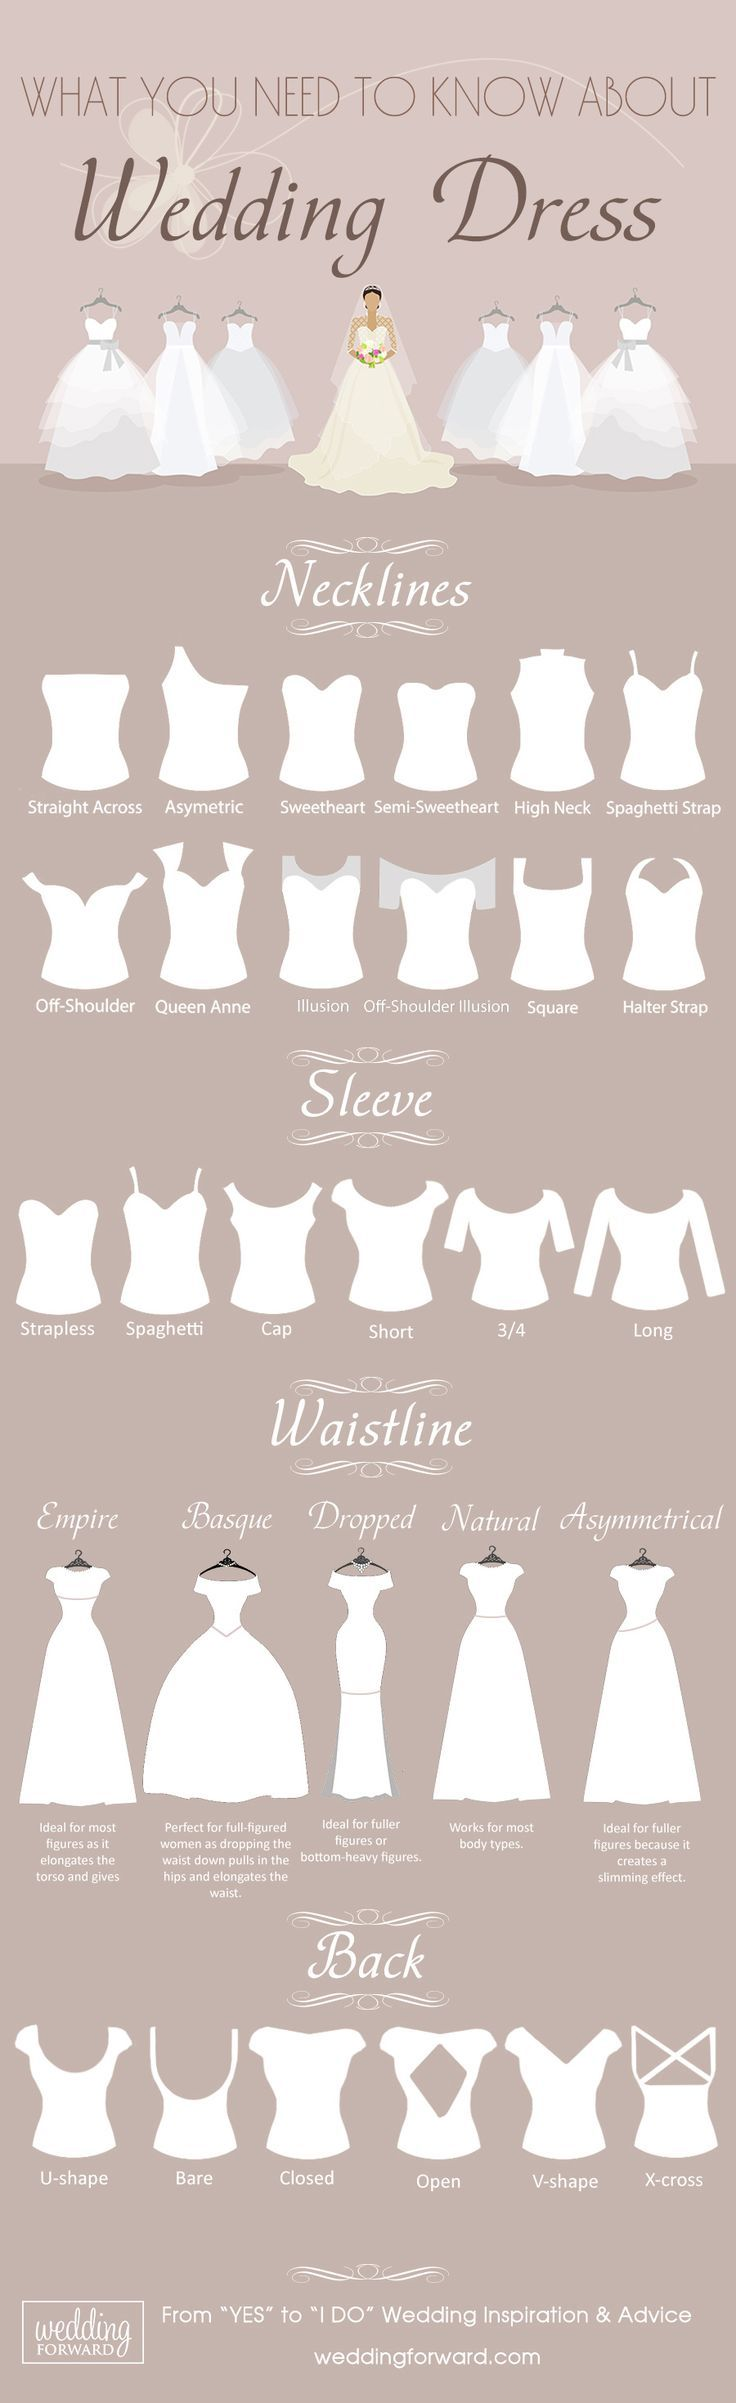 wedding dress guide necklines sleeve waistline back